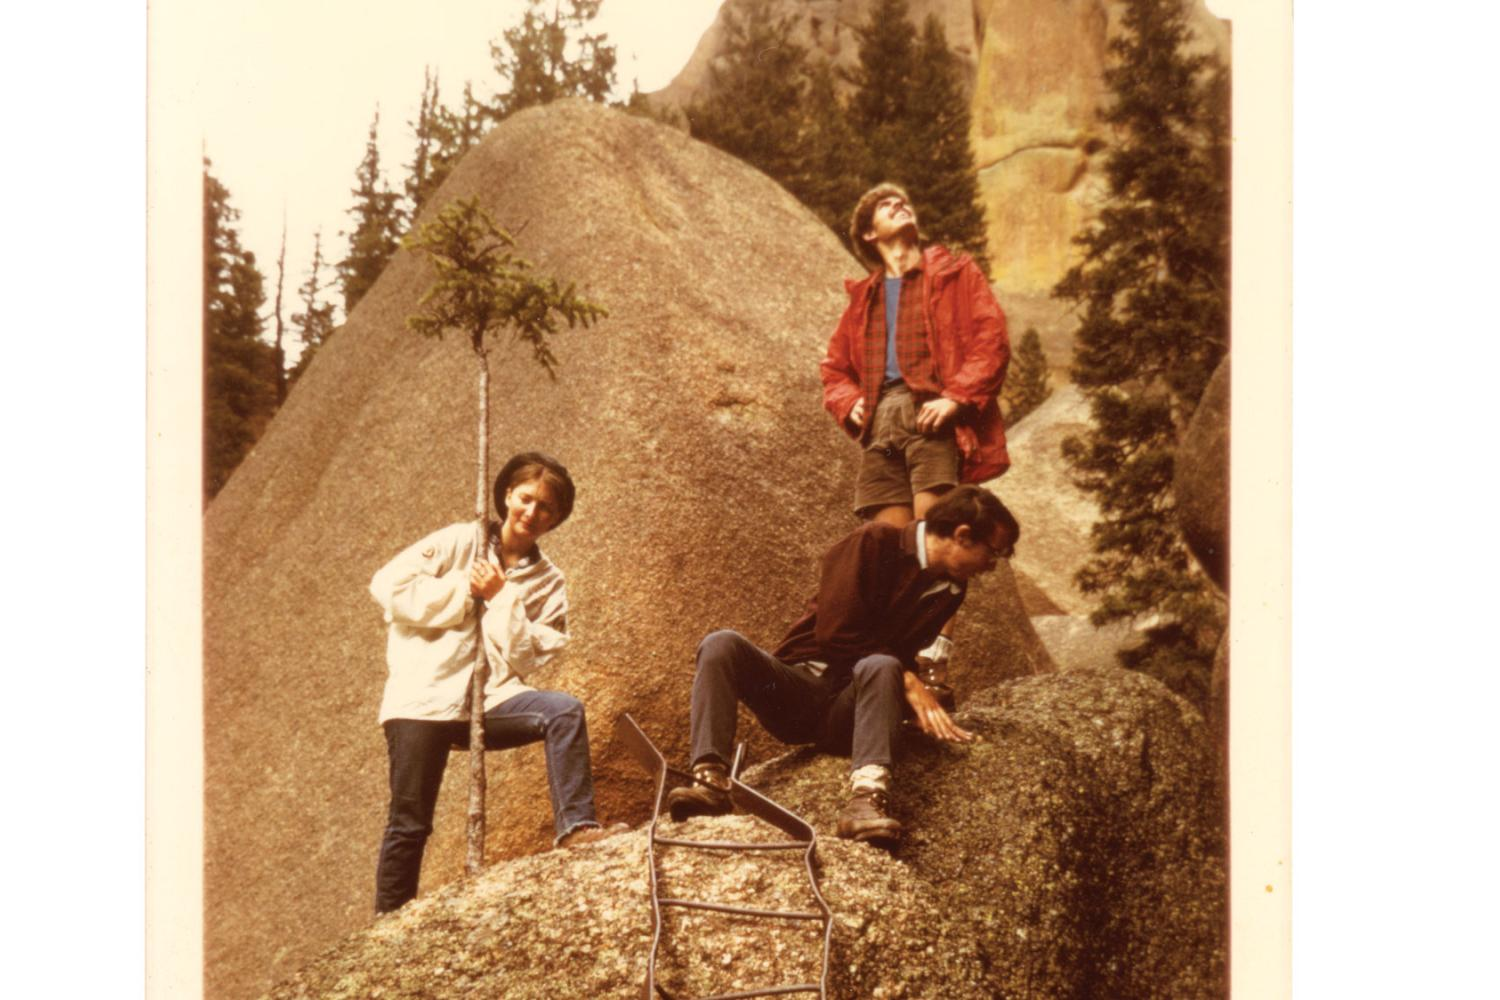 Hikers at Lost Creek trail in 1971